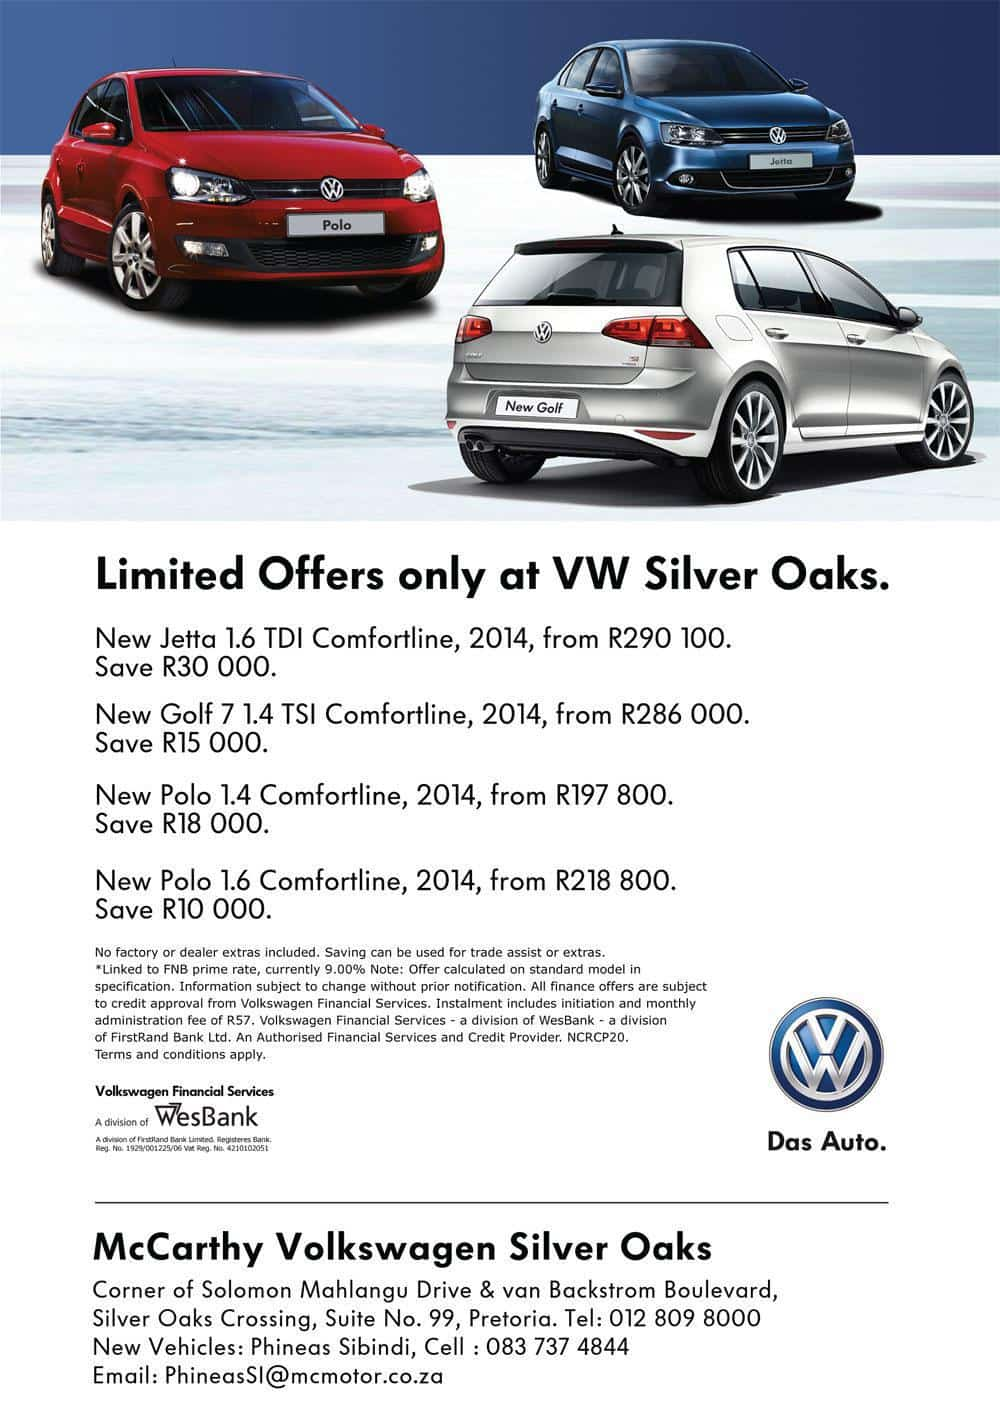 Limited offers at VW Silver Oaks, Pretoria